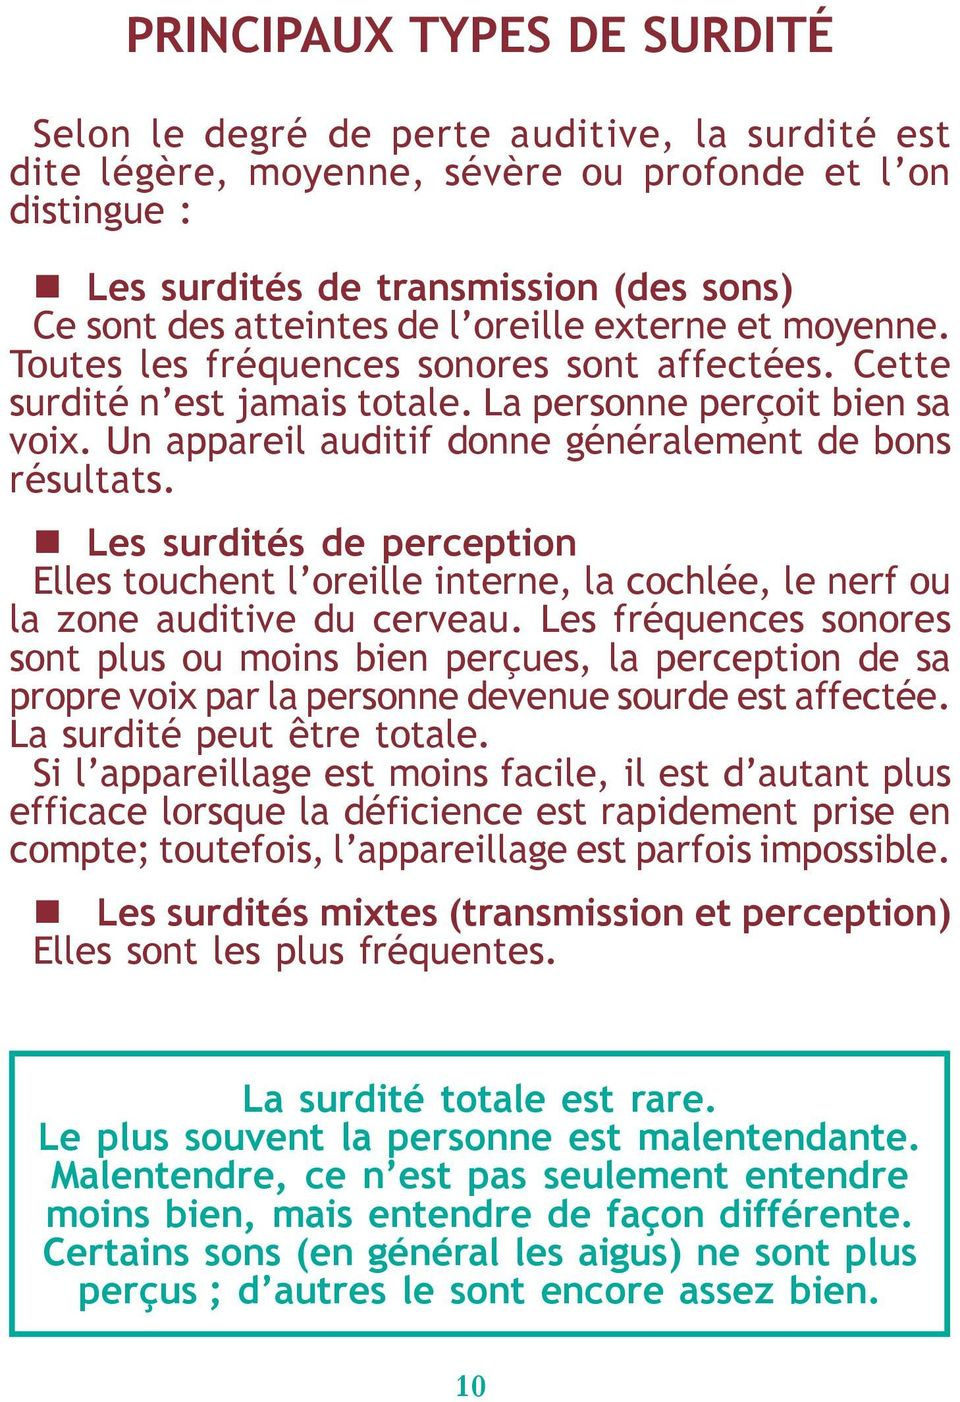 Un appareil auditif donne généralement de bons résultats. Les surdités de perception Elles touchent l oreille interne, la cochlée, le nerf ou la zone auditive du cerveau.